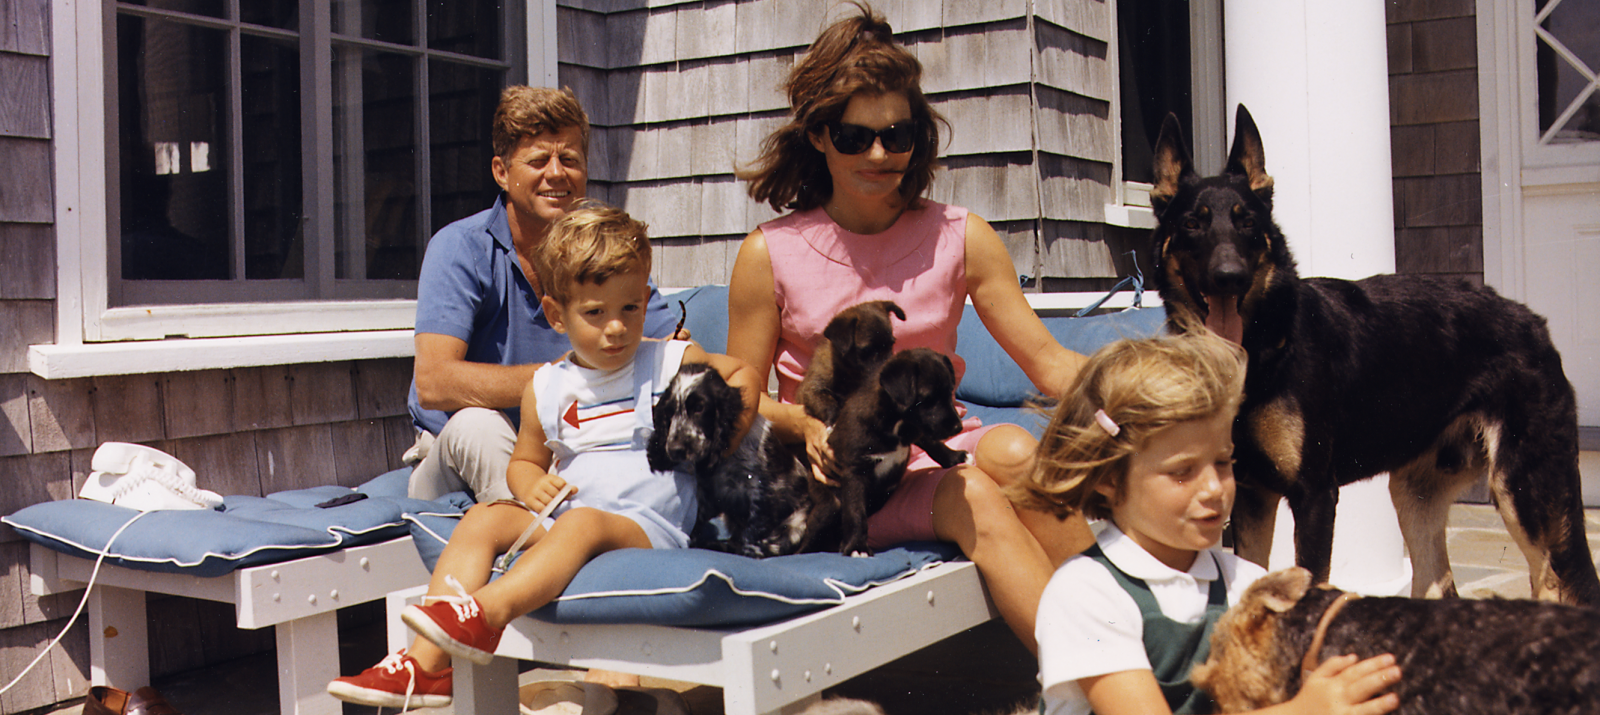 kennedy family with dogs in hyannis port, massachusetts